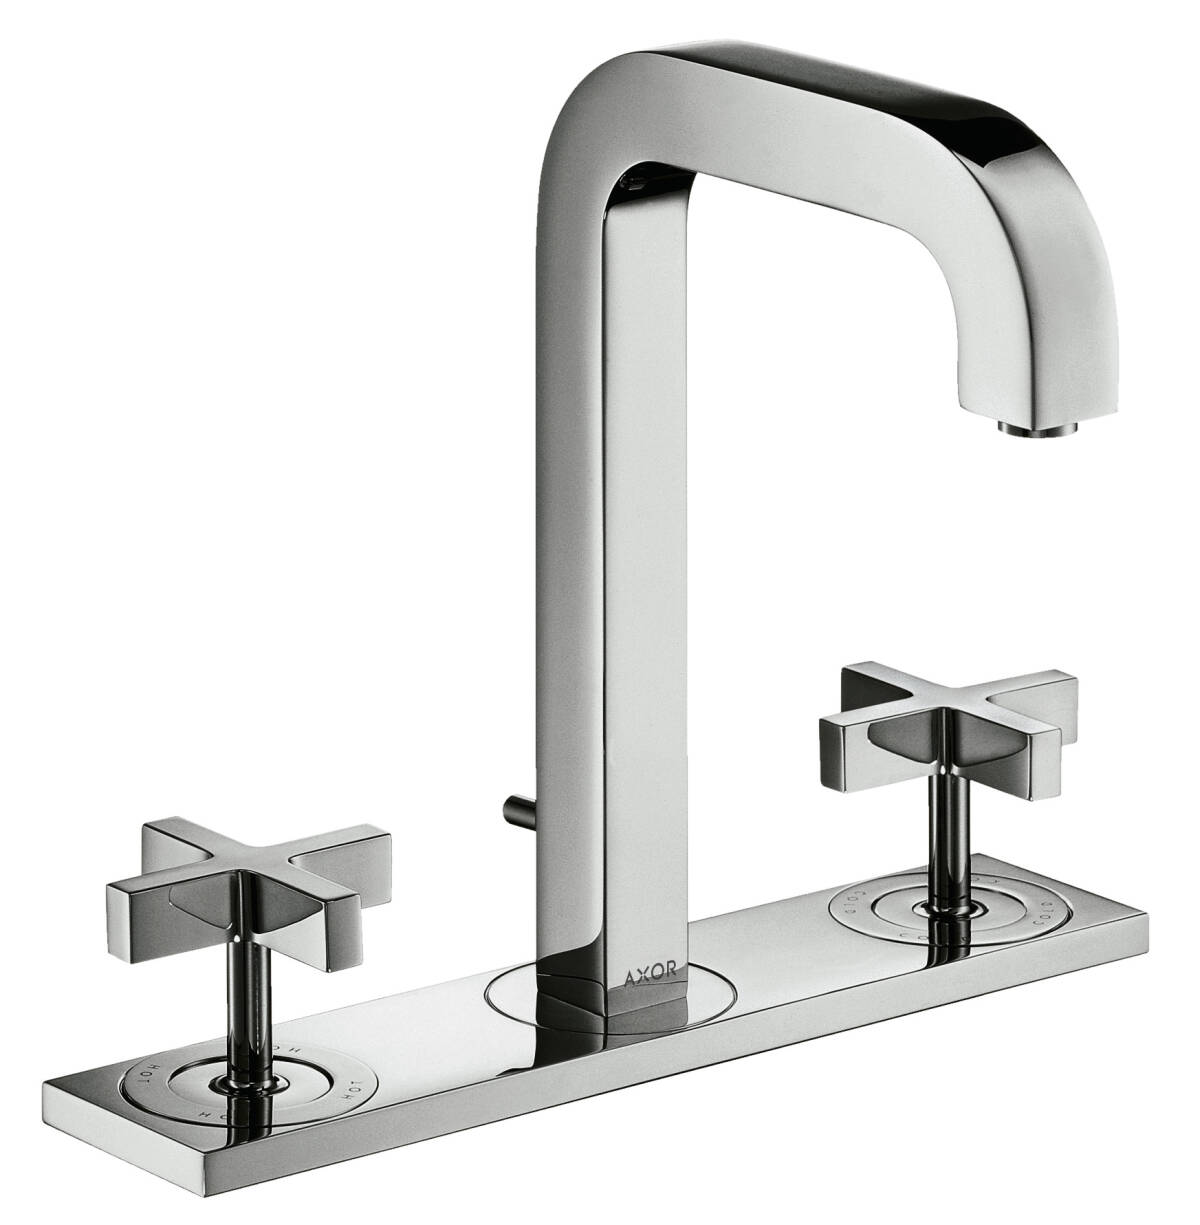 3-hole basin mixer 170 with spout 140 mm, cross handles, plate and pop-up waste set, Chrome, 39134000